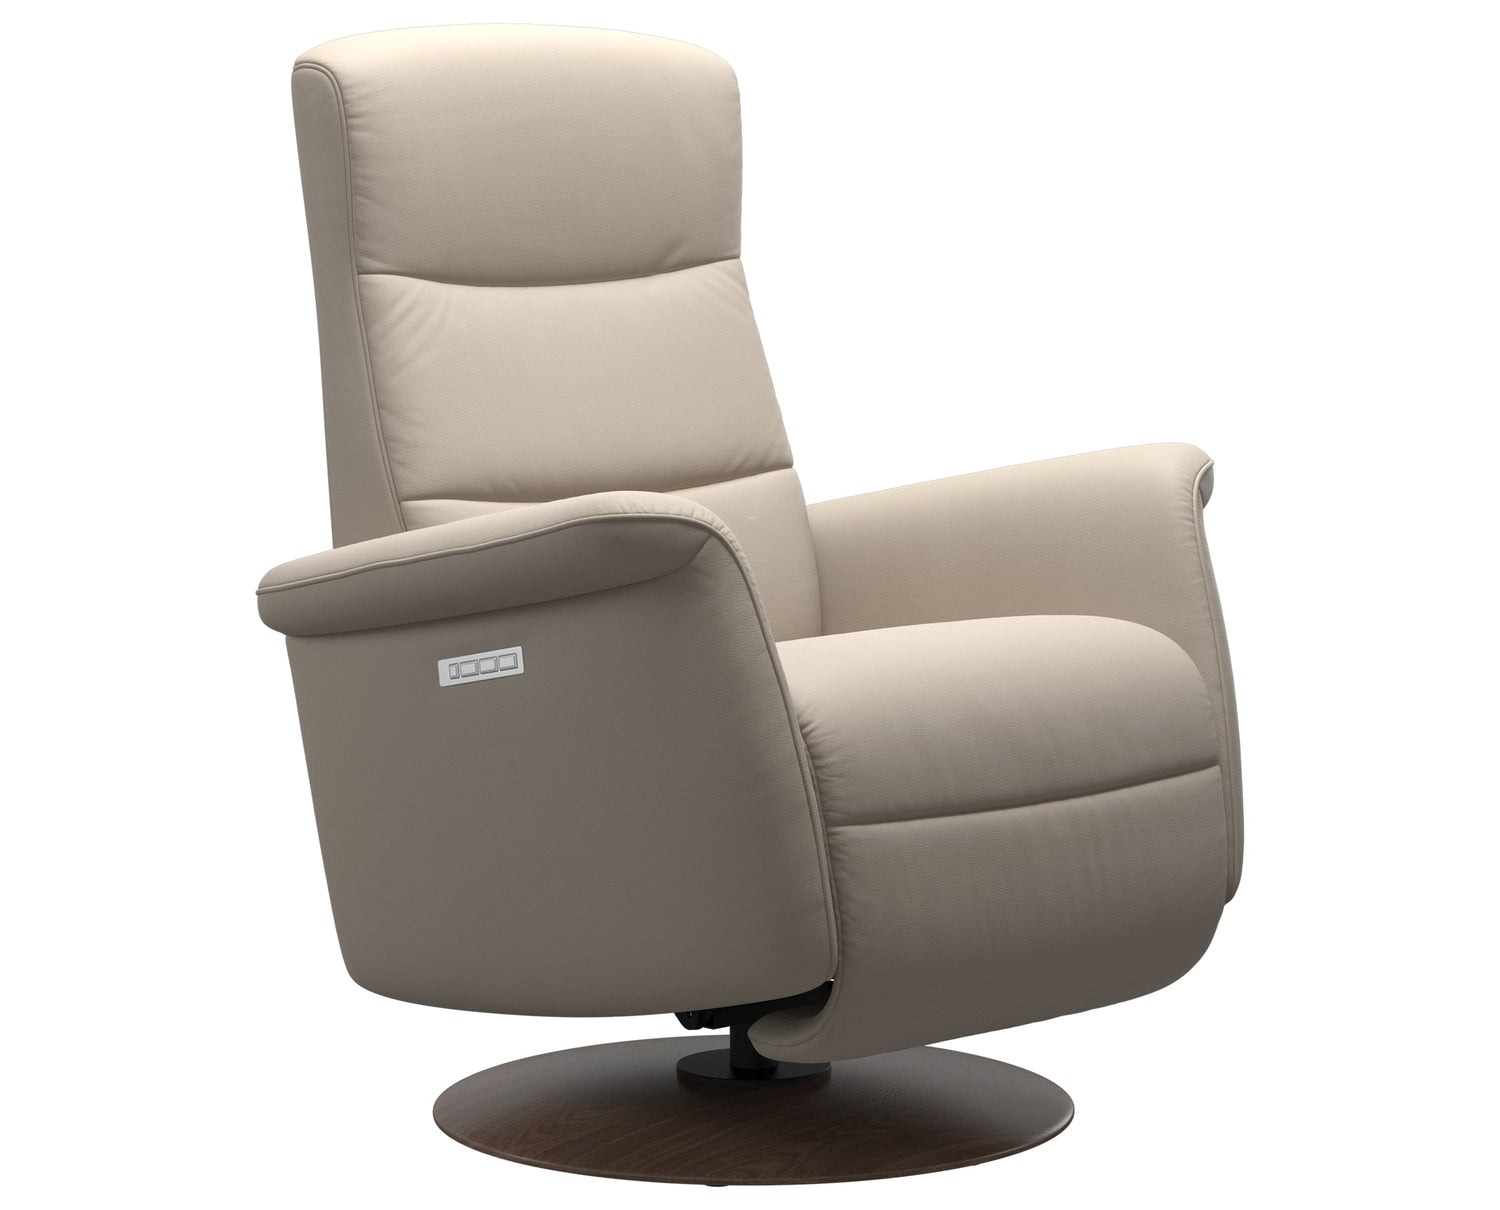 Paloma Leather Fog S/M/L & Wenge Base | Stressless Mike Recliner | Valley Ridge Furniture